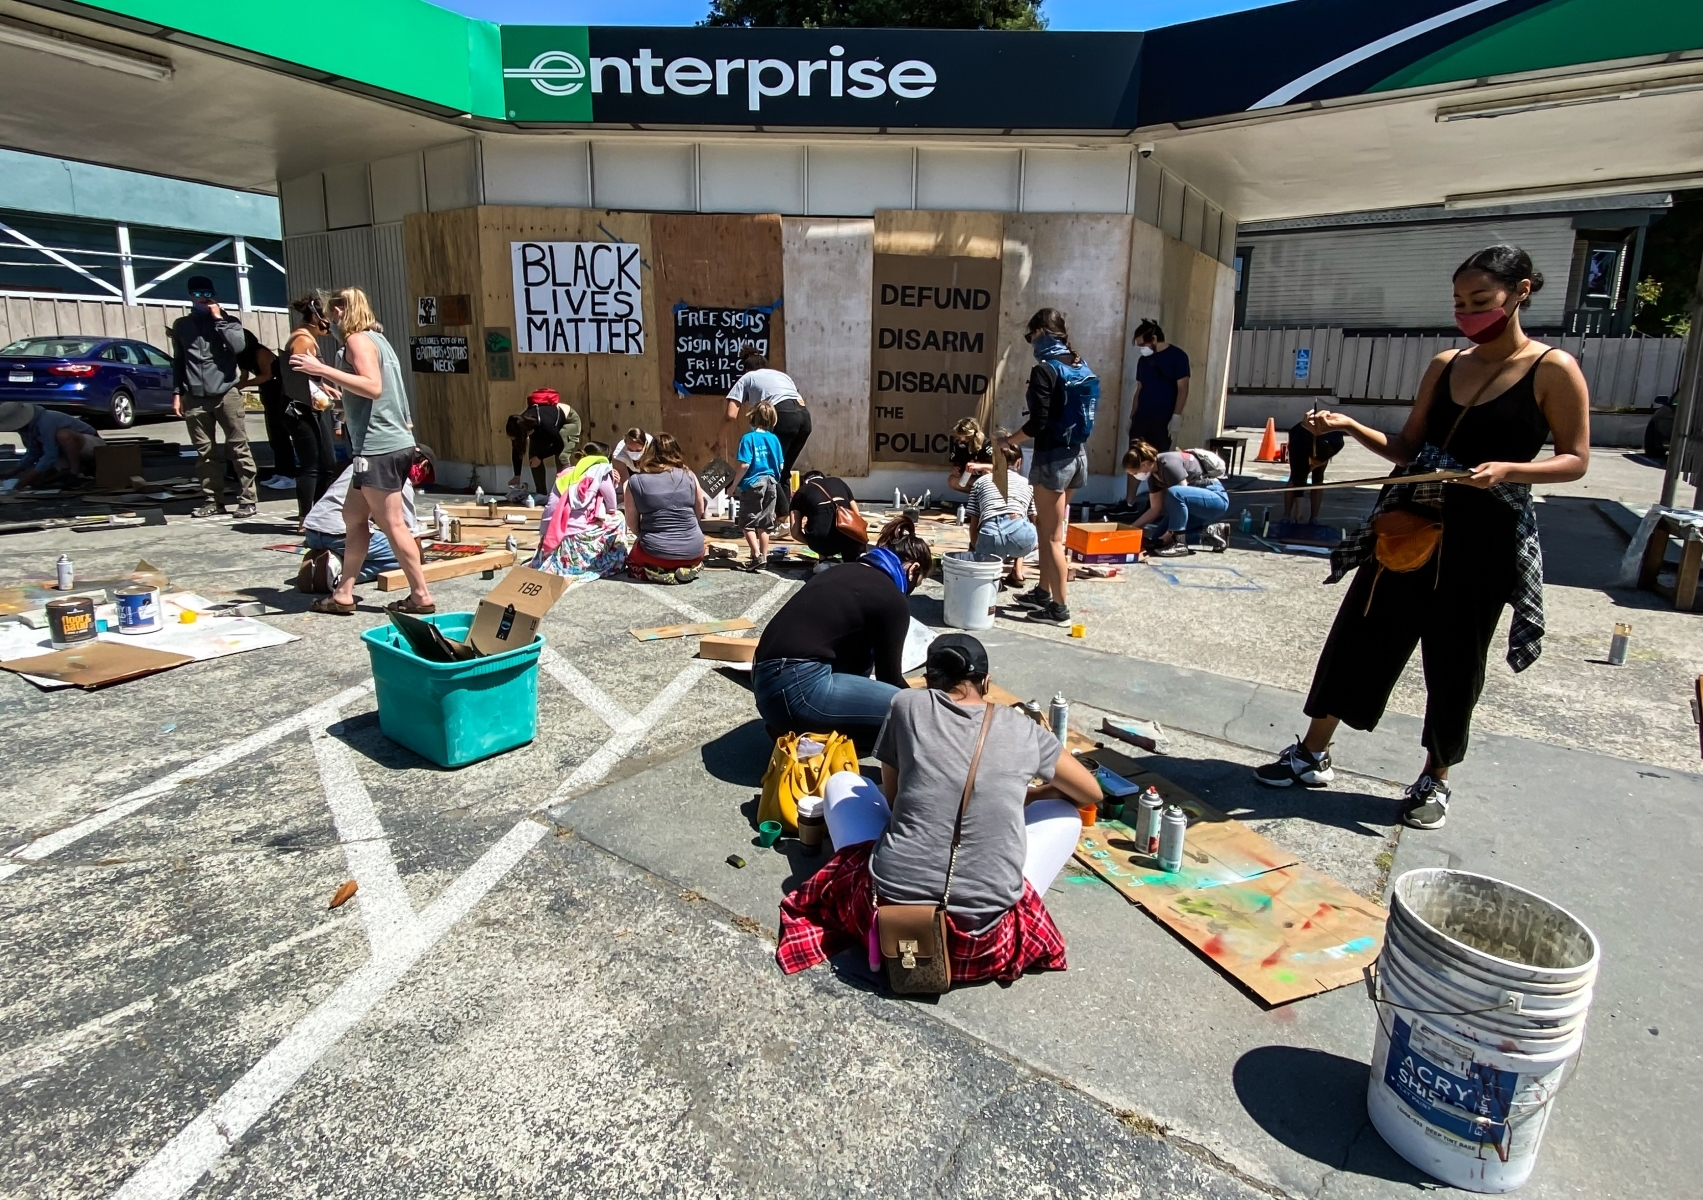 Berkeley-takes-a-stand-for-Black-Lives.-2-Activists-turned-an-Enterprise-lot-into-a-free-sign-making-space.-JB-Place-by-Mishaa-Degraw-BK